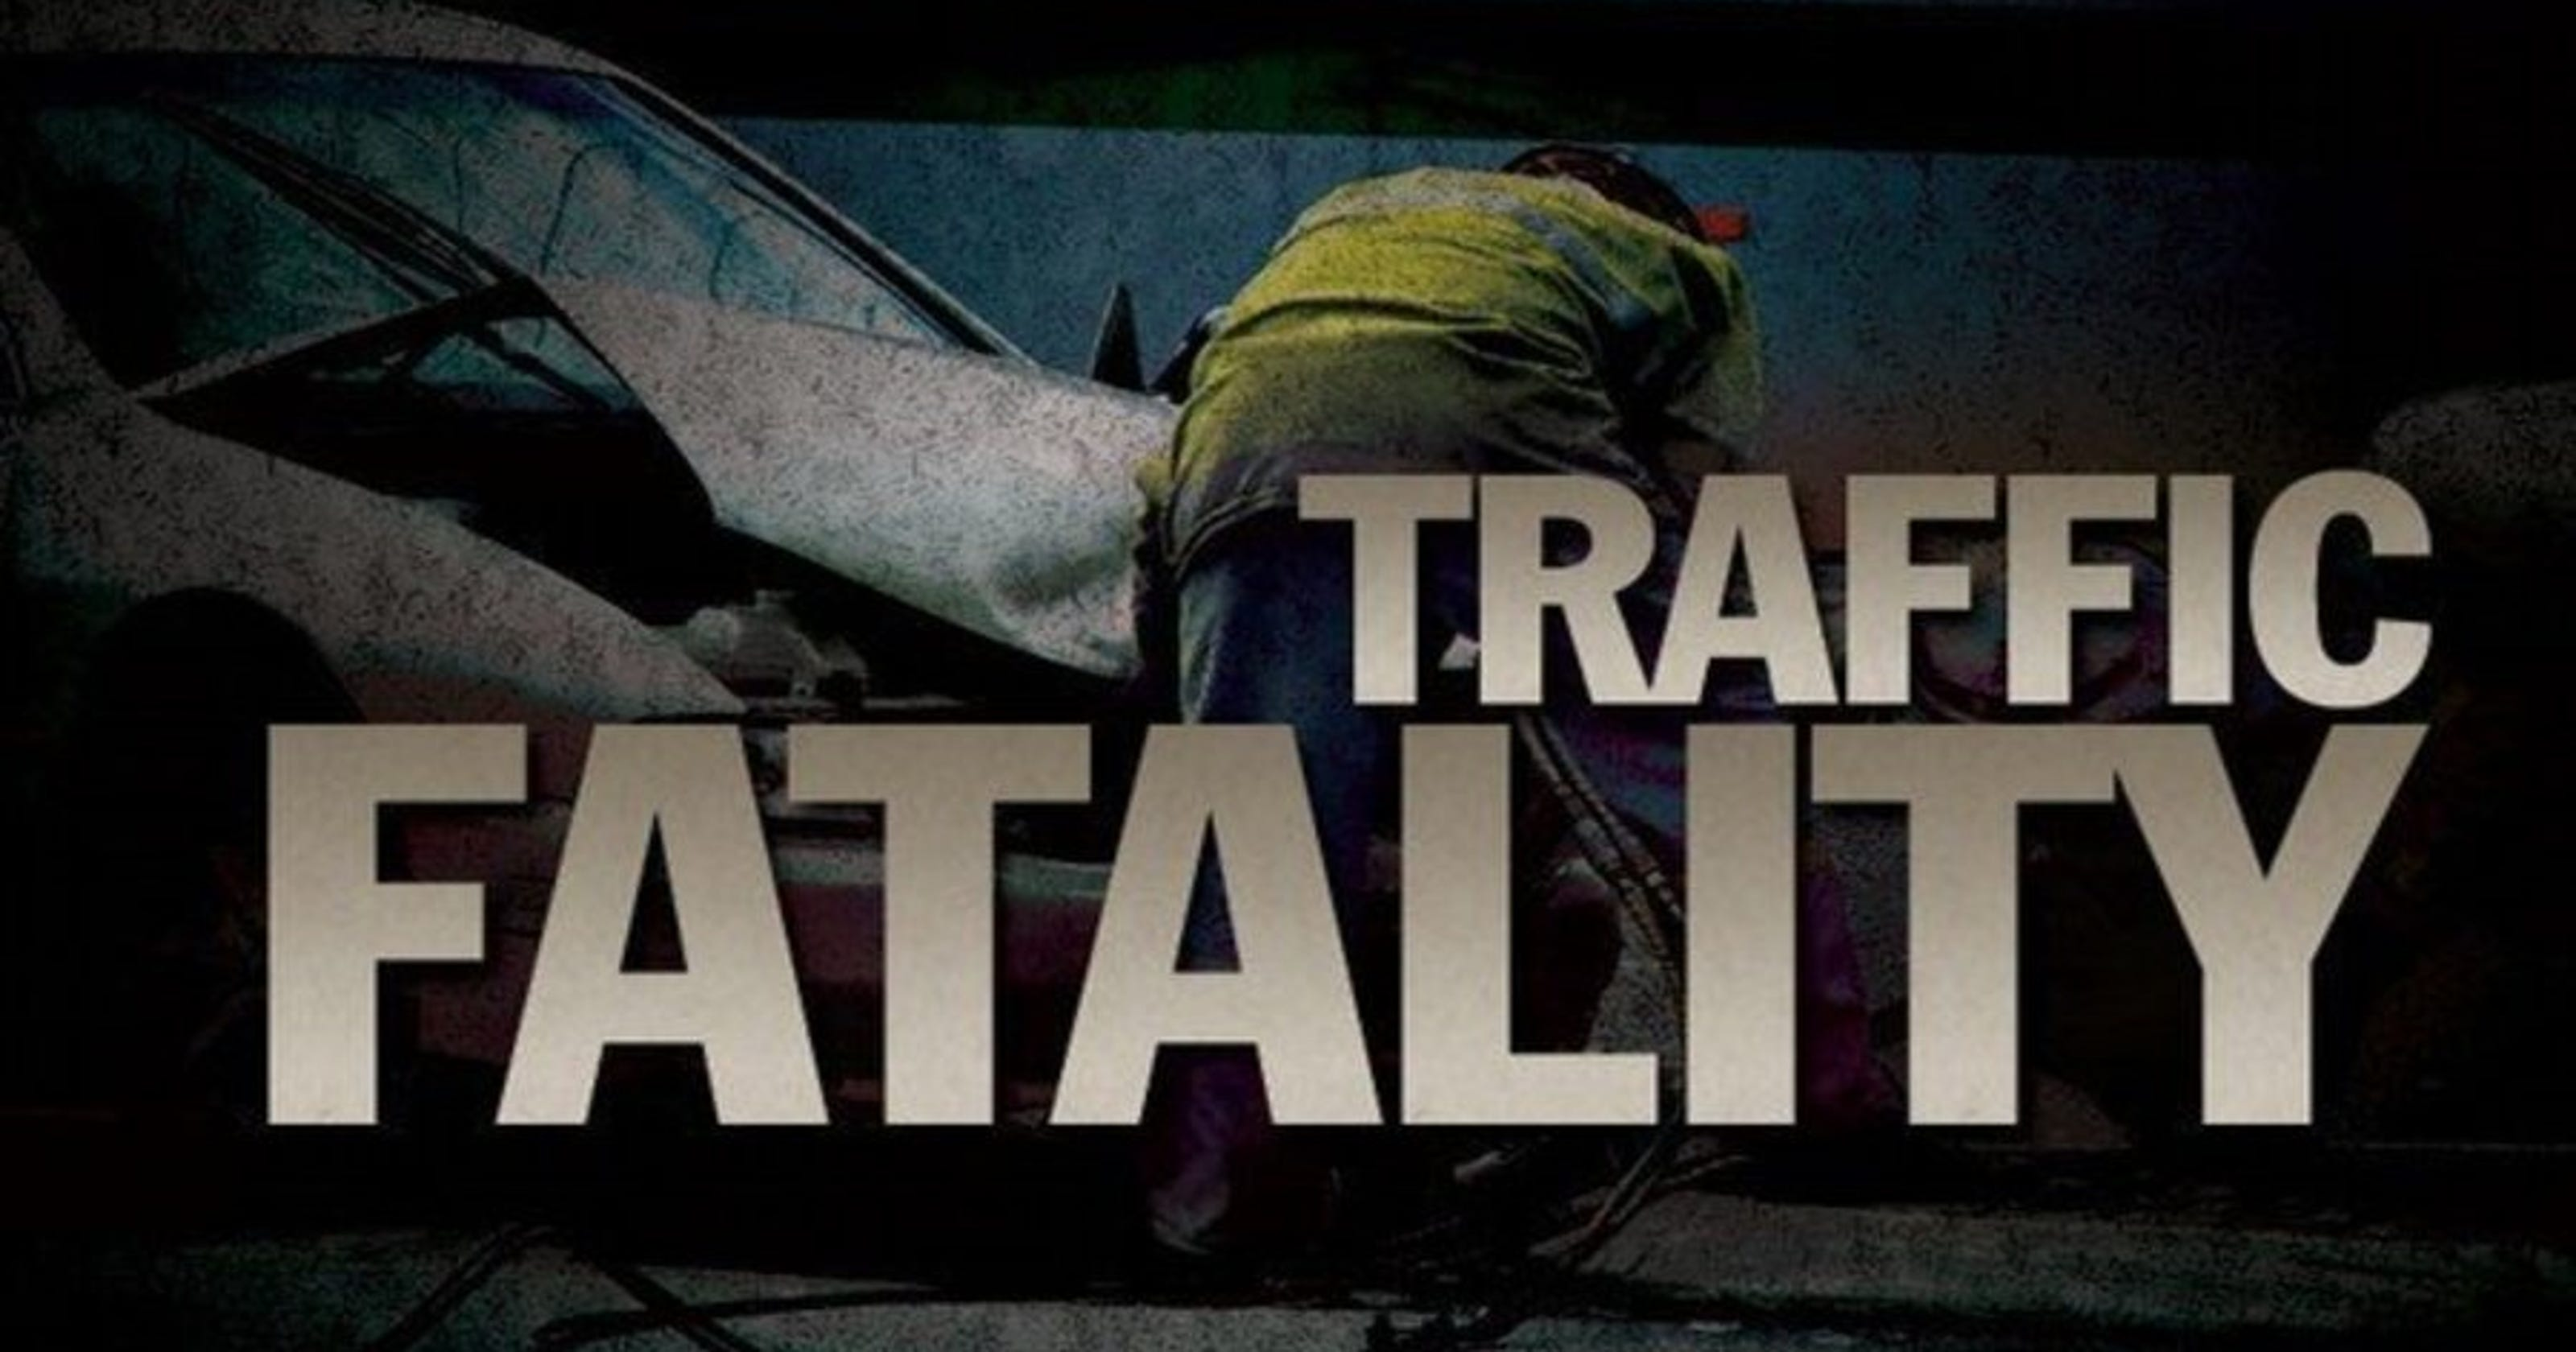 One killed in one vehicle crash in Comanche County